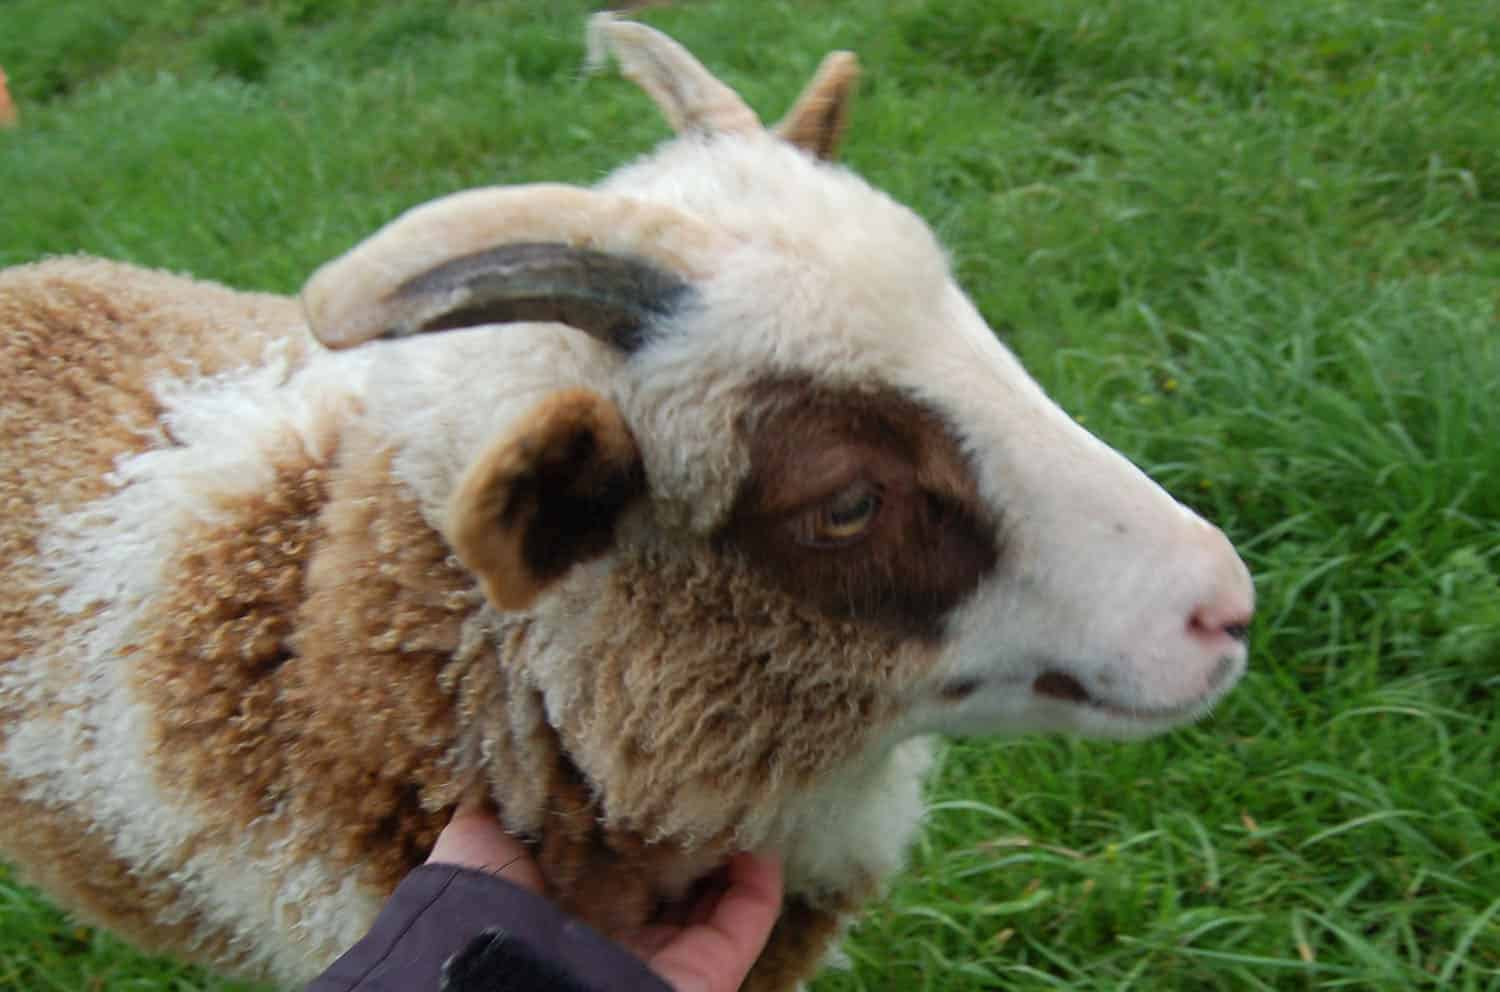 Martha lamb patchwork sheep moorit white spotted brown primitive sheep crossbreed